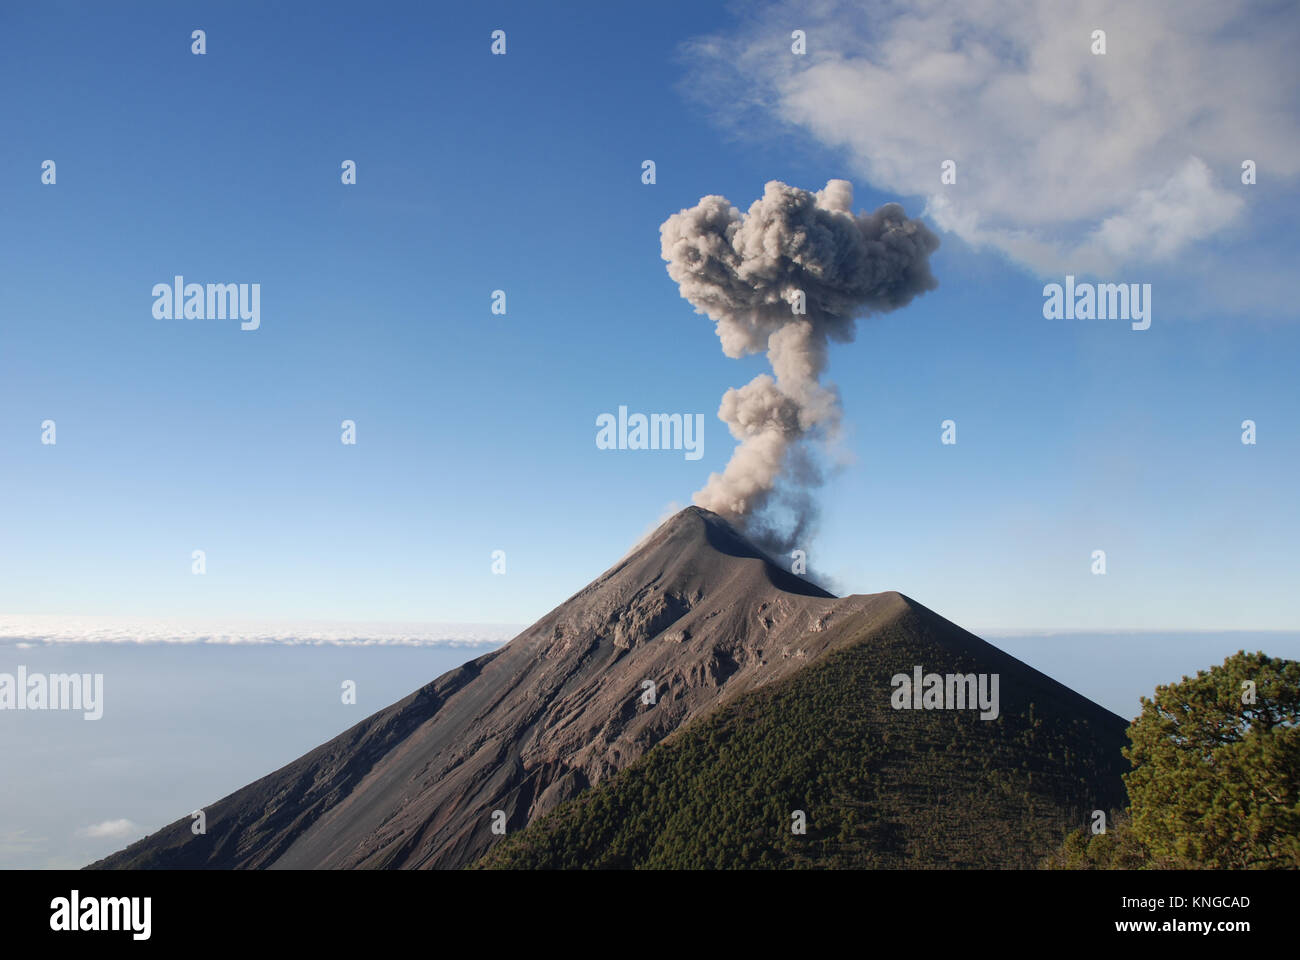 an eruption of Fuego volcano in Guatemala which is  the worlds most continuously active volcano - Stock Image